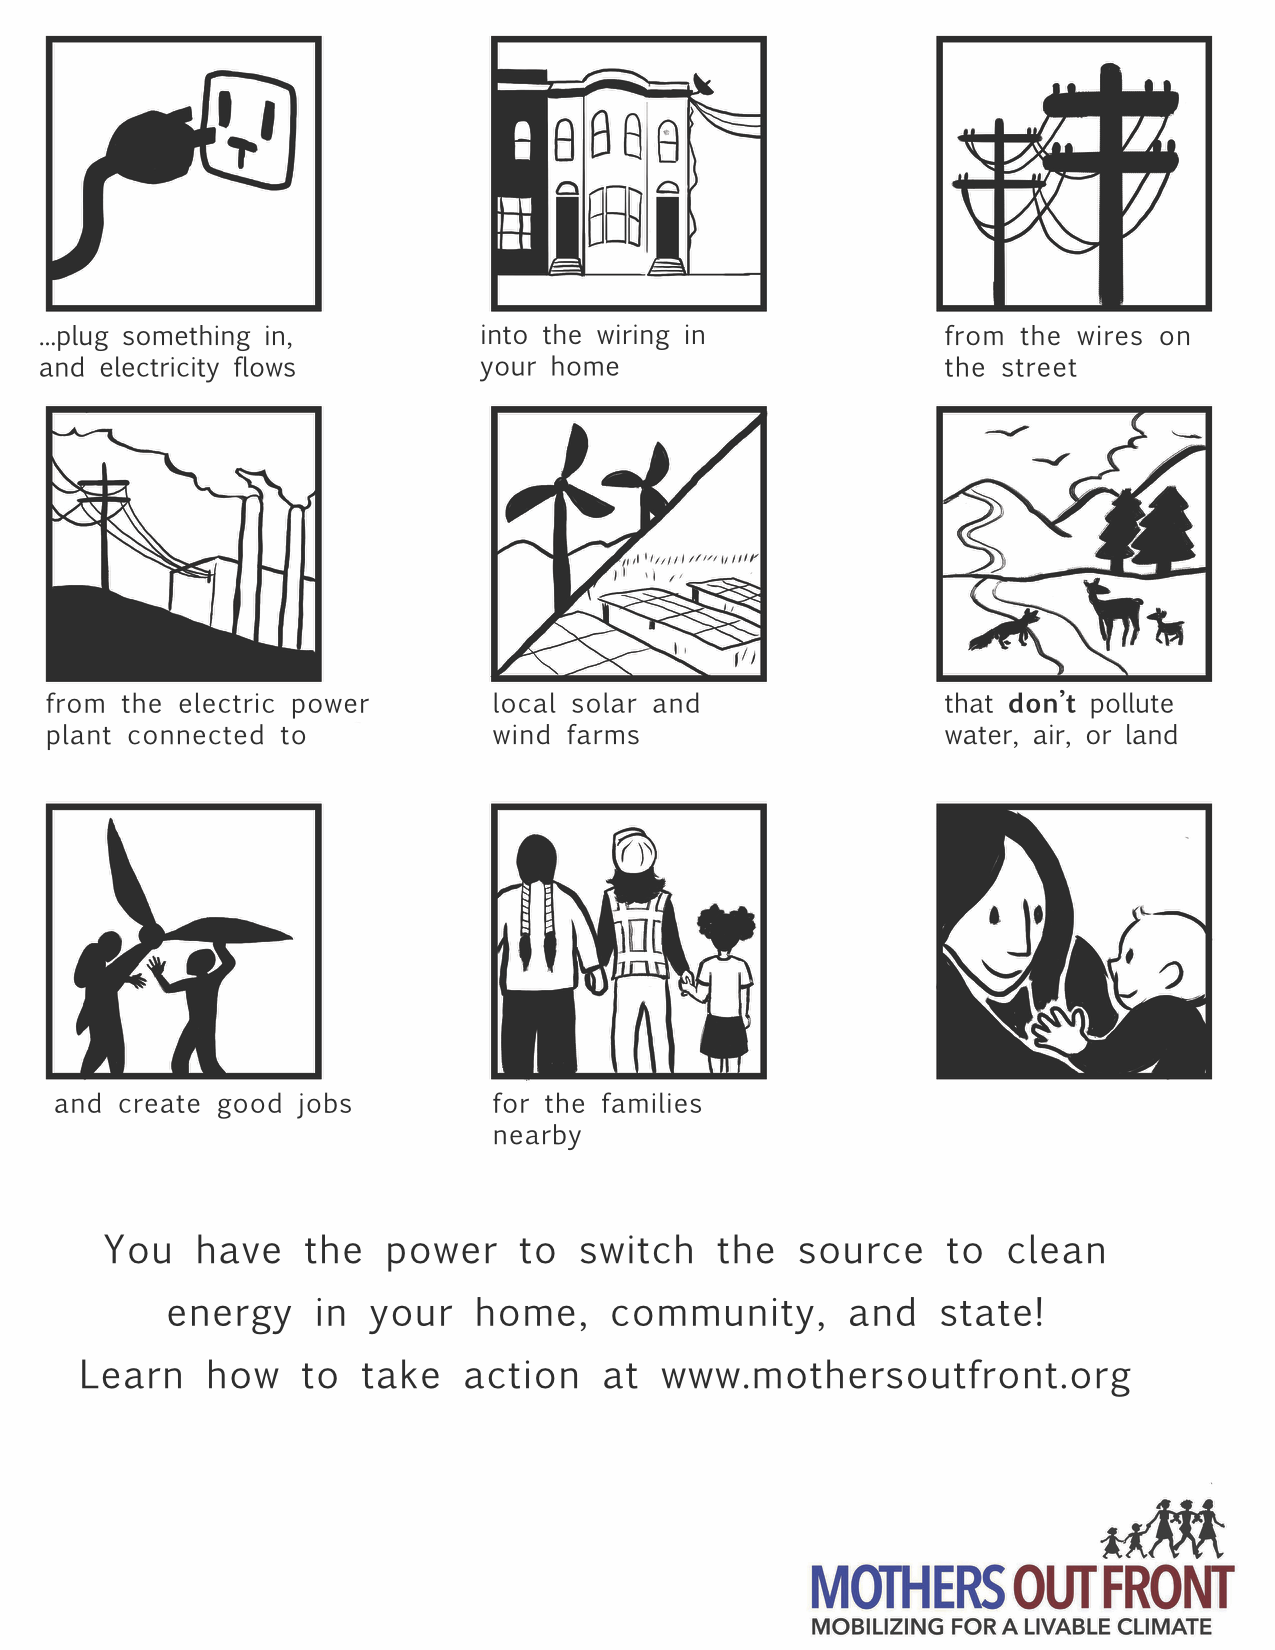 Electricity_Source_Flyer_MOF(1)_Pg2.png